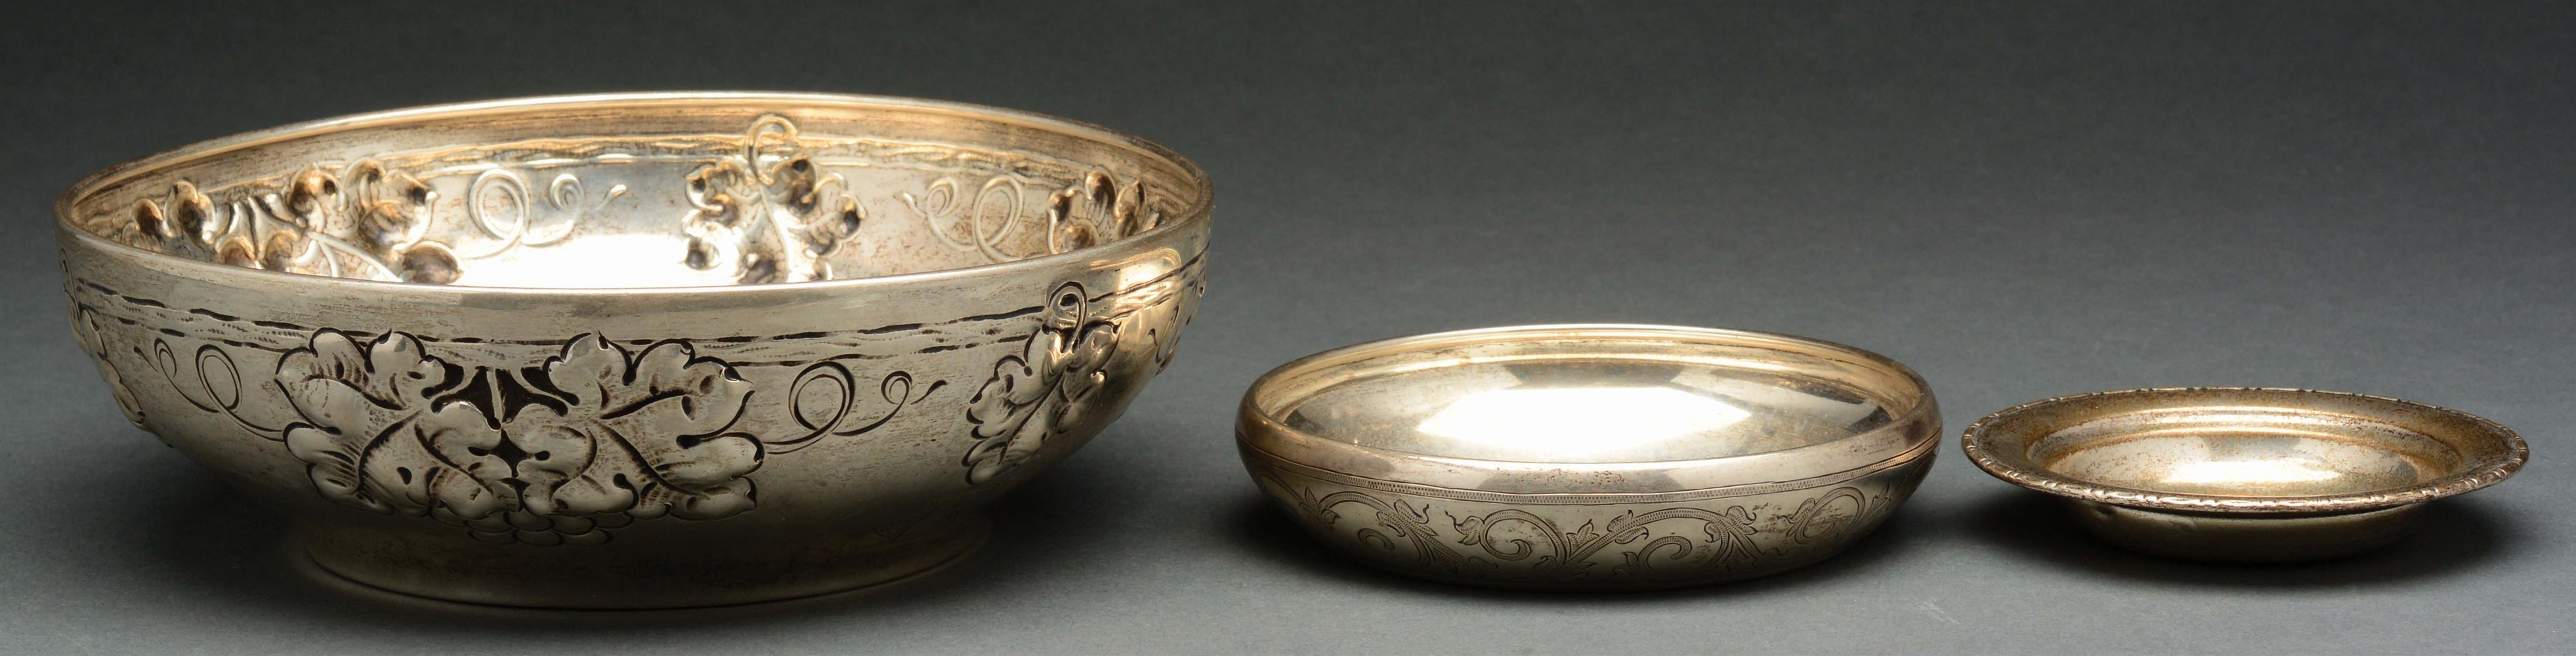 Lot of 3: Norwegian 830 Silver Bowls, One with Repousse Design.